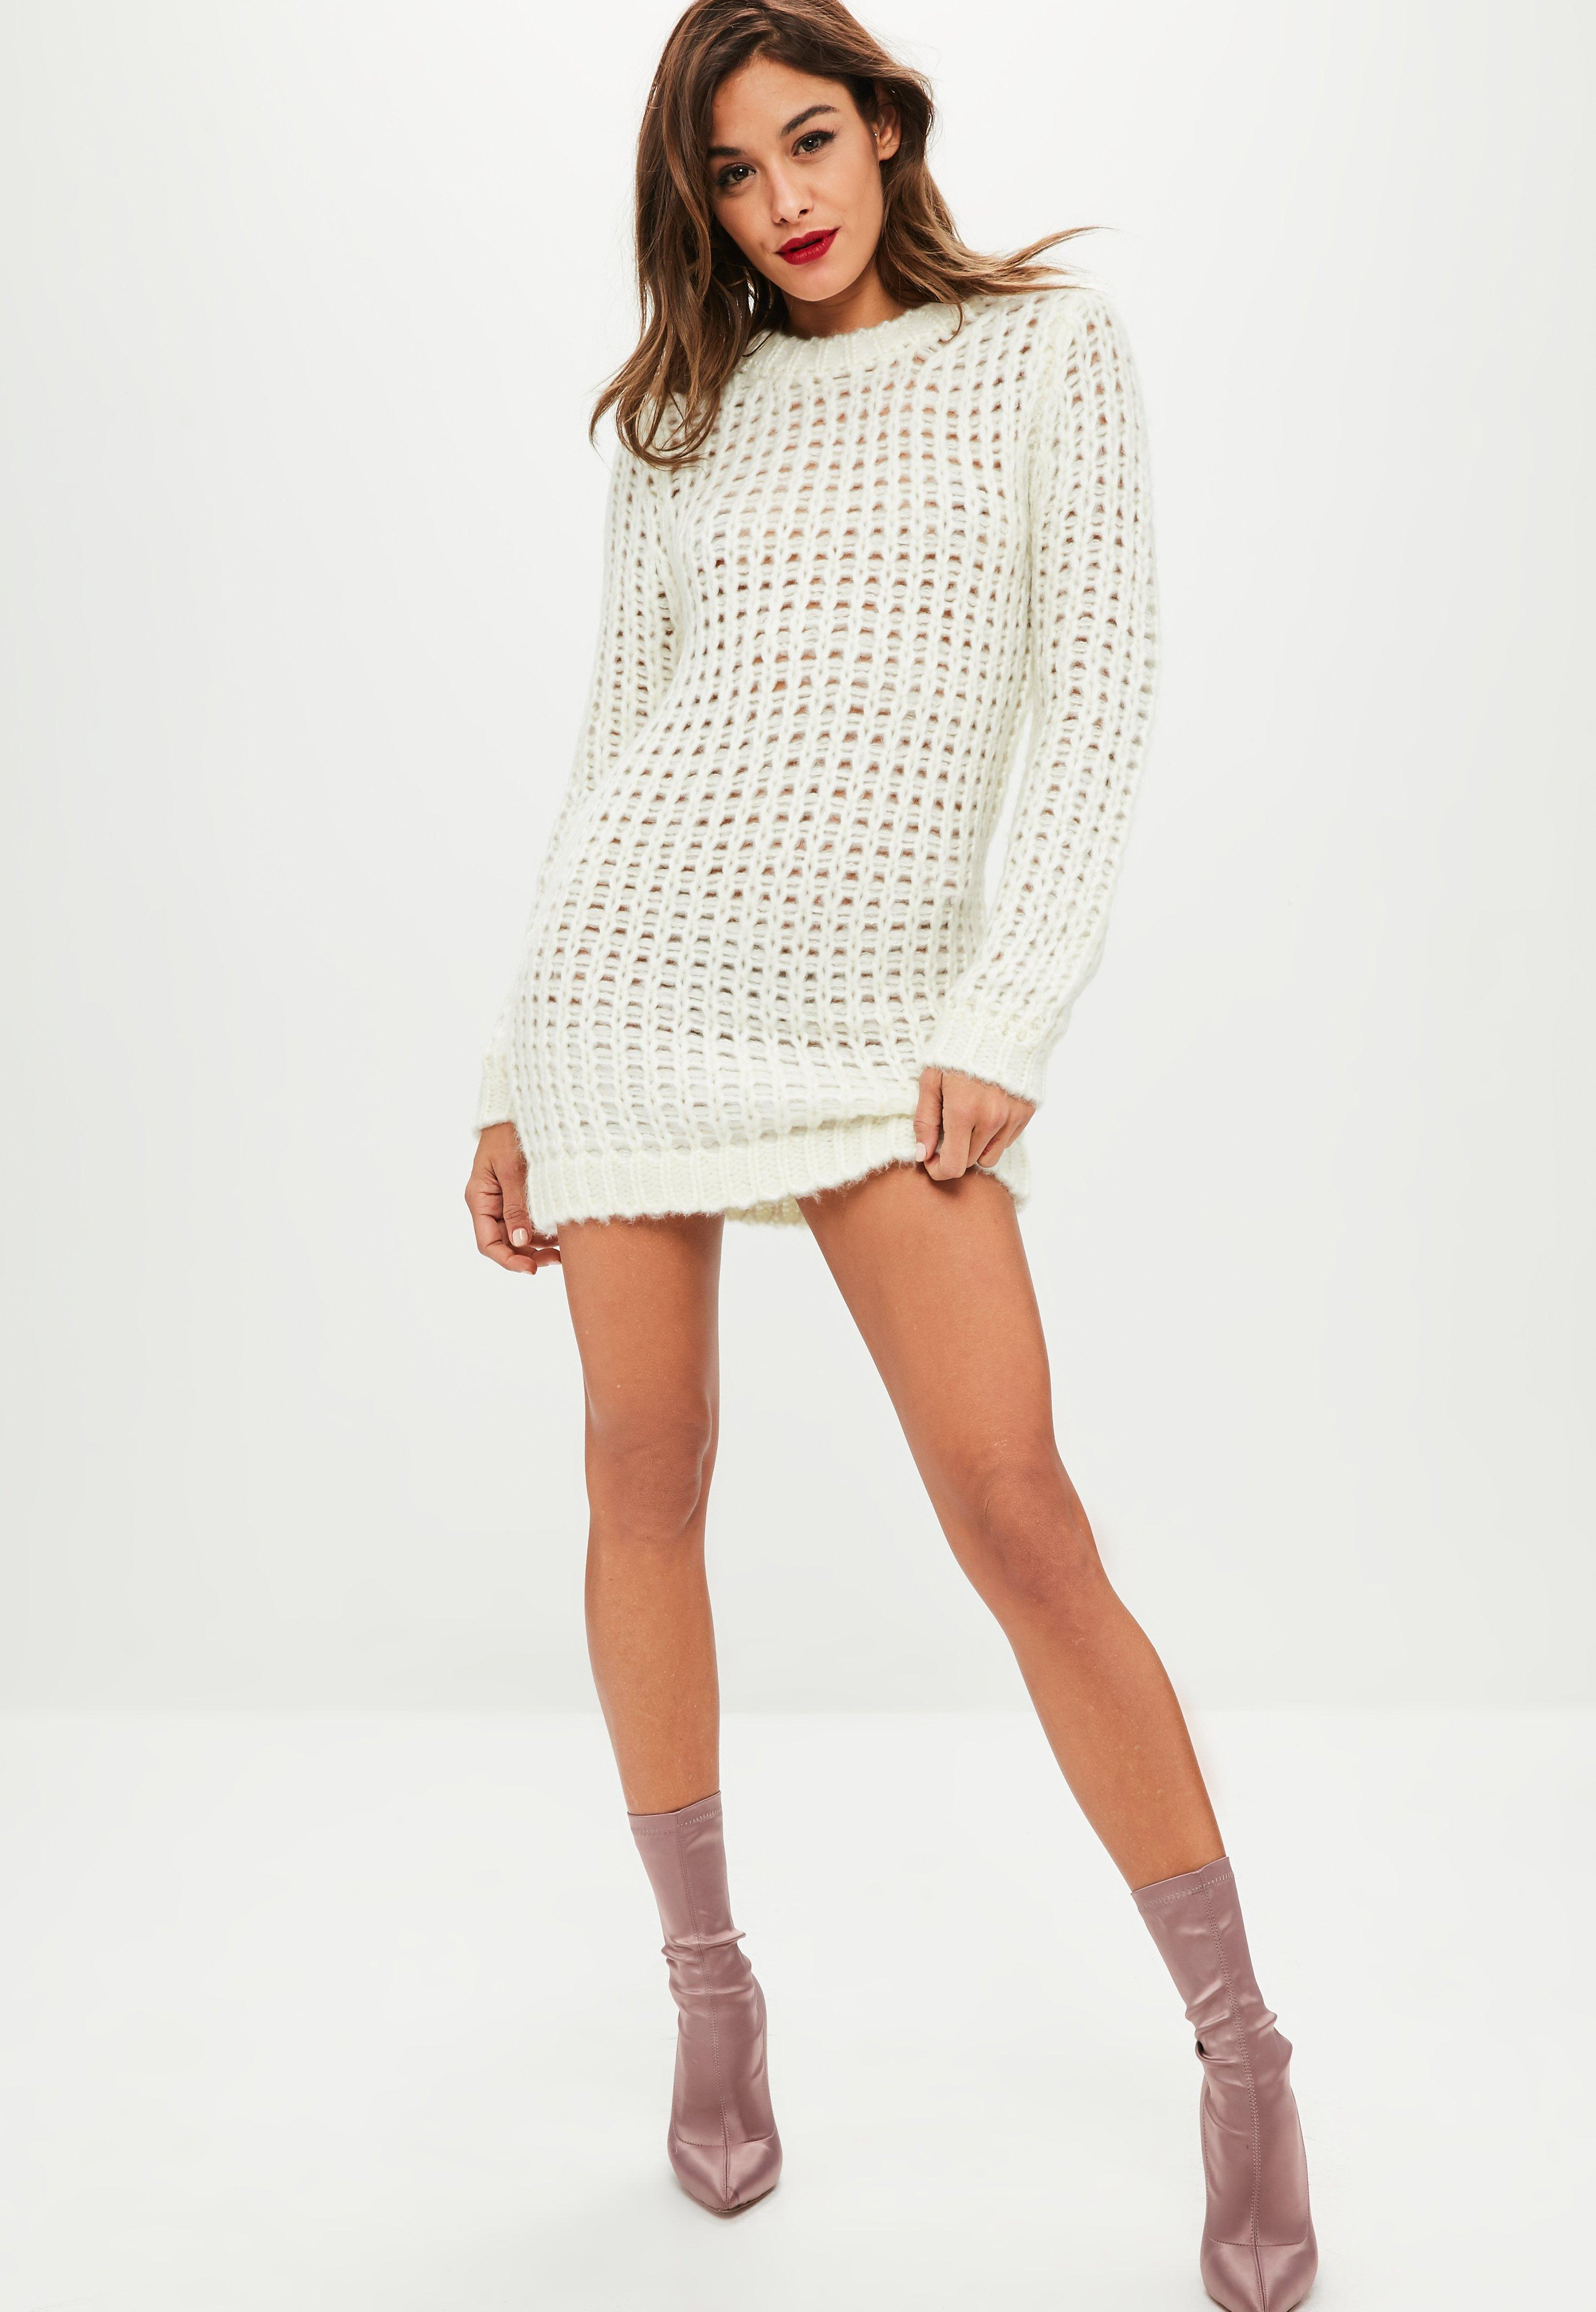 759d418ea4 Missguided Ivory Chunky Knit Oversized Jumper Dress in White - Lyst